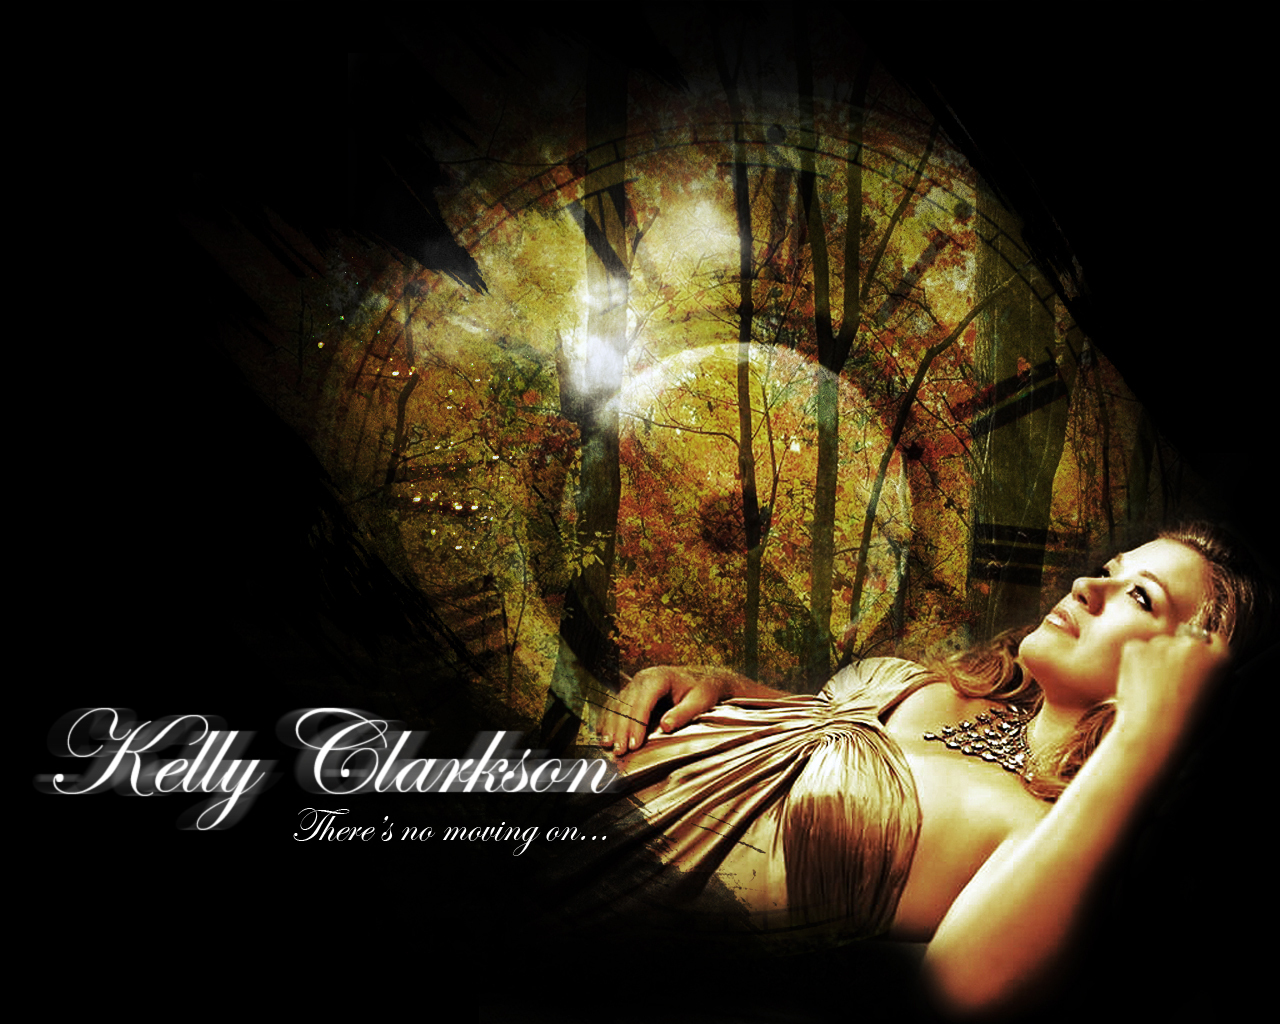 Kelly Clarkson Naked Picture Image And Wallpaper Download Nude